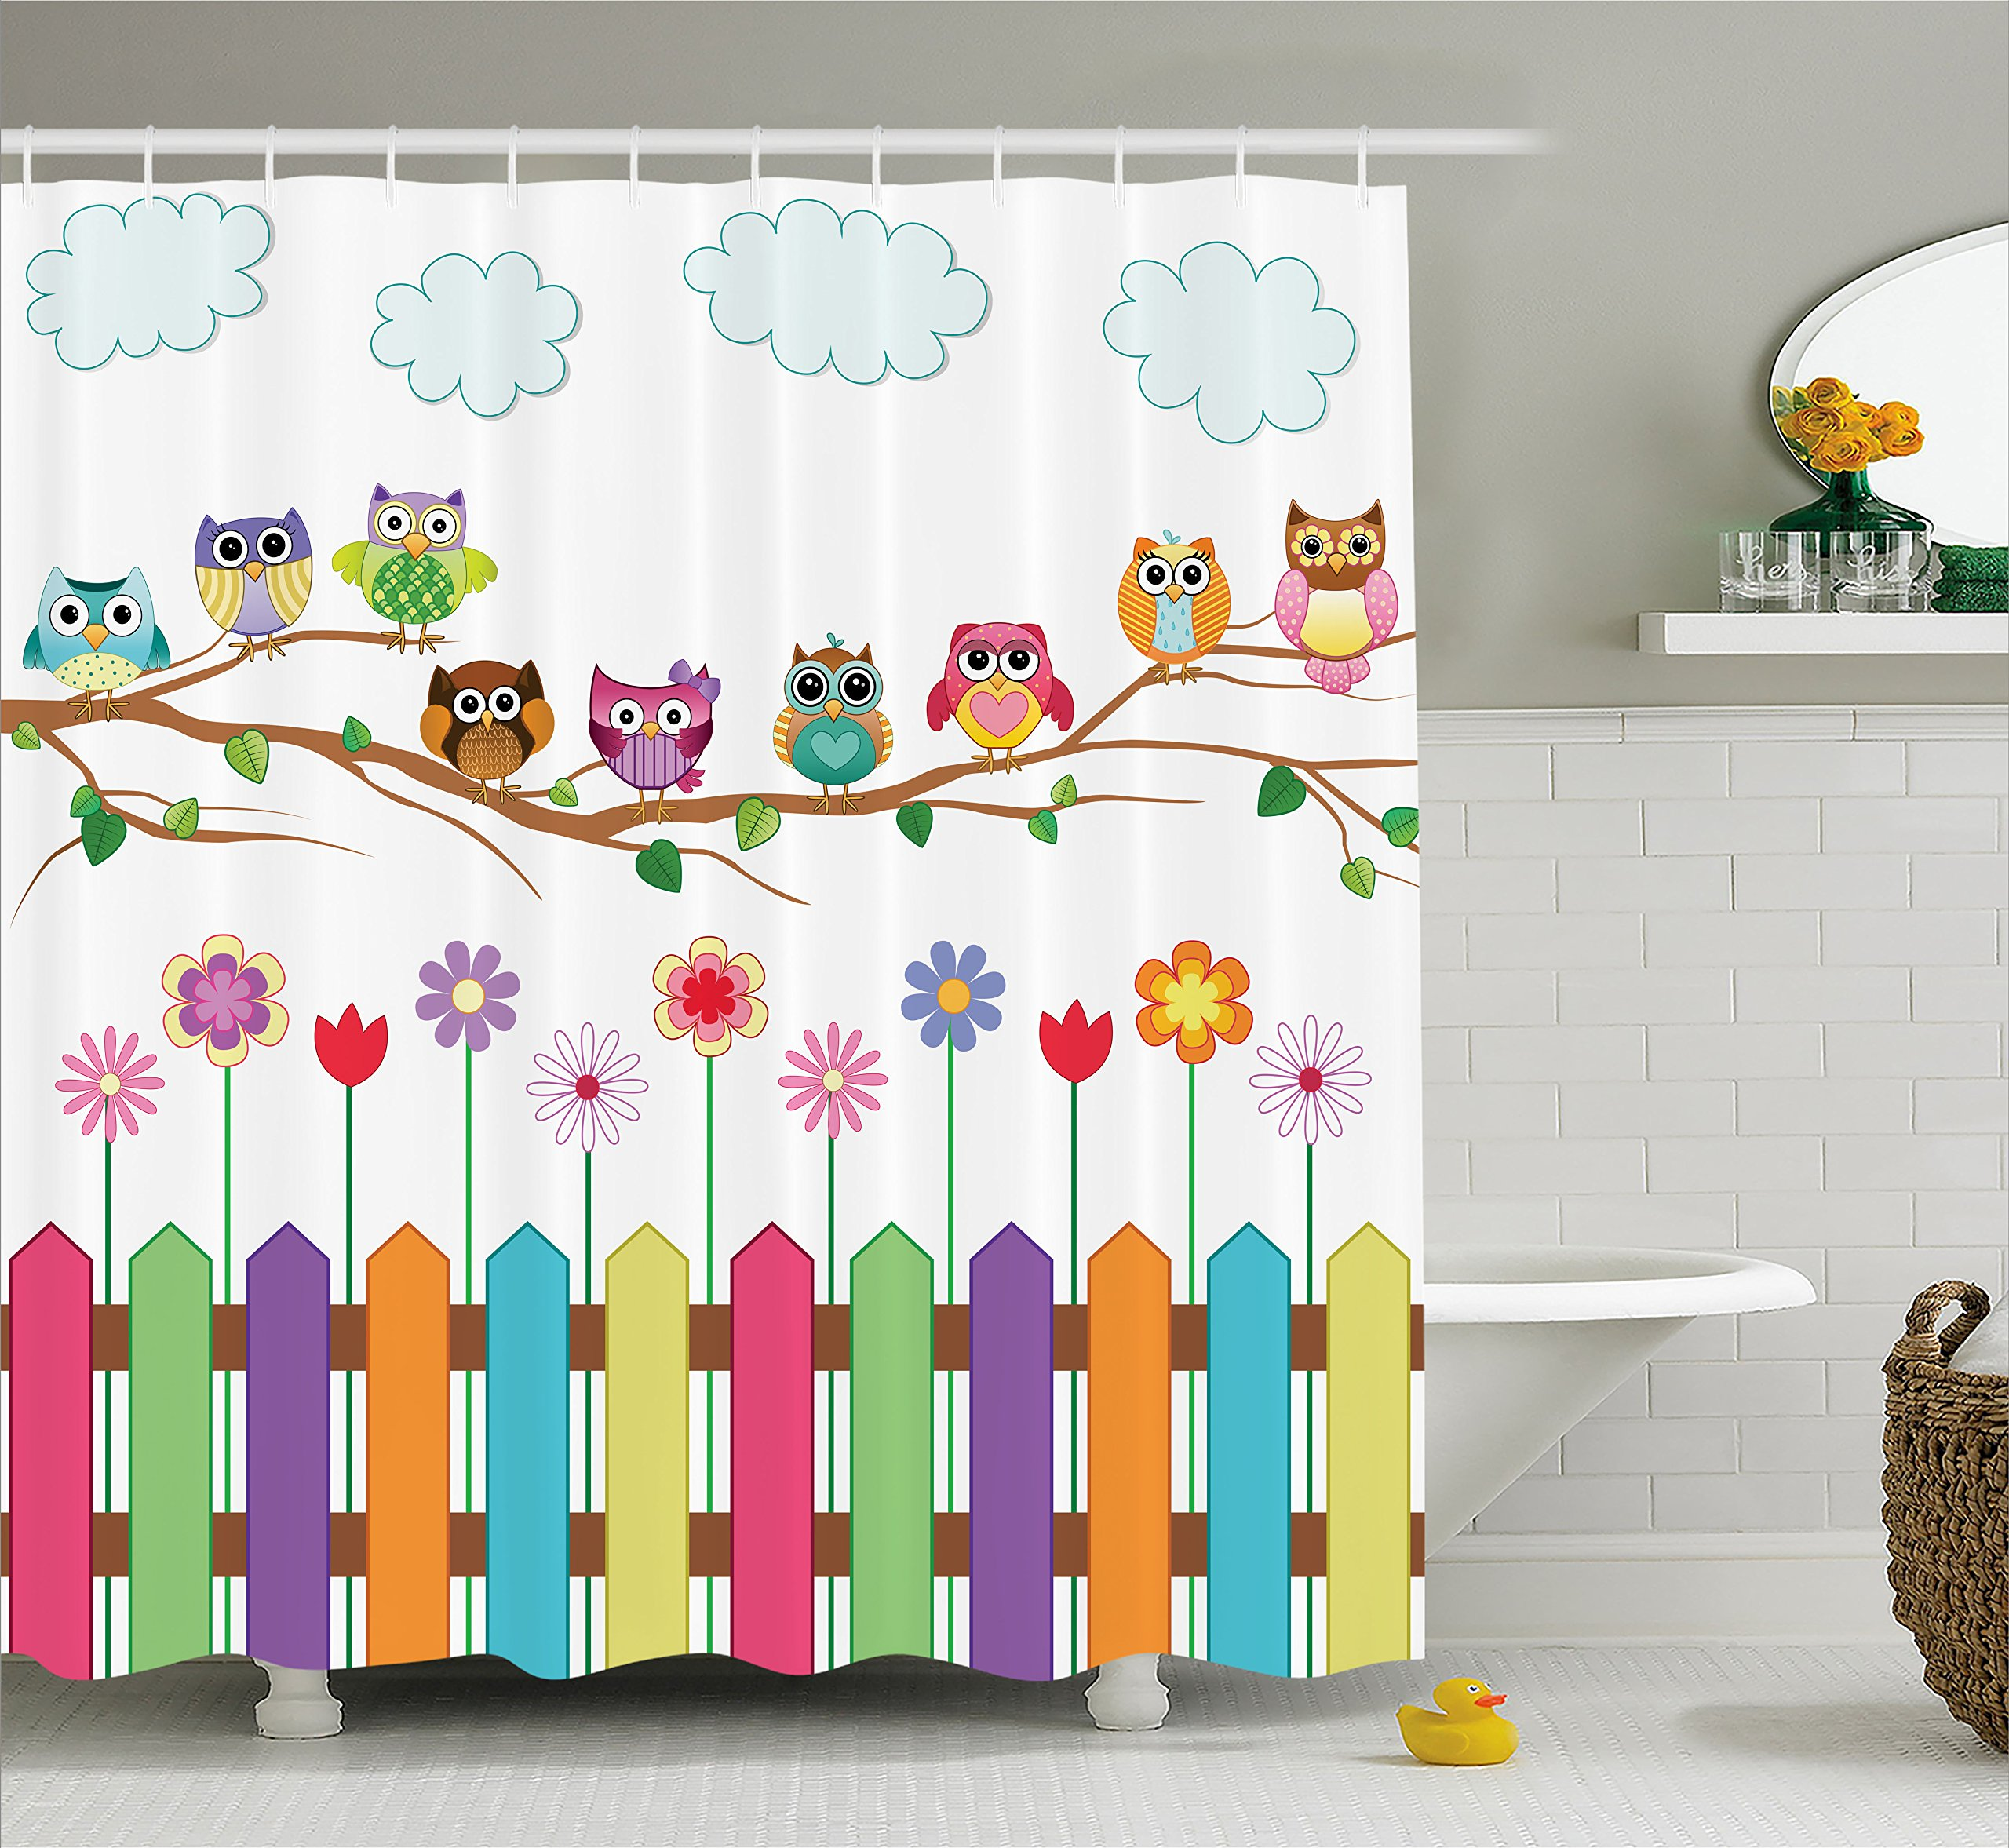 Ambesonne Owls Home Decor Shower Curtain Set By, Owls On A Branch Sunny Day Countryside Farmhouse Fences Wildflowers Holidays Art, Bathroom Accessories, 75 Inches Long